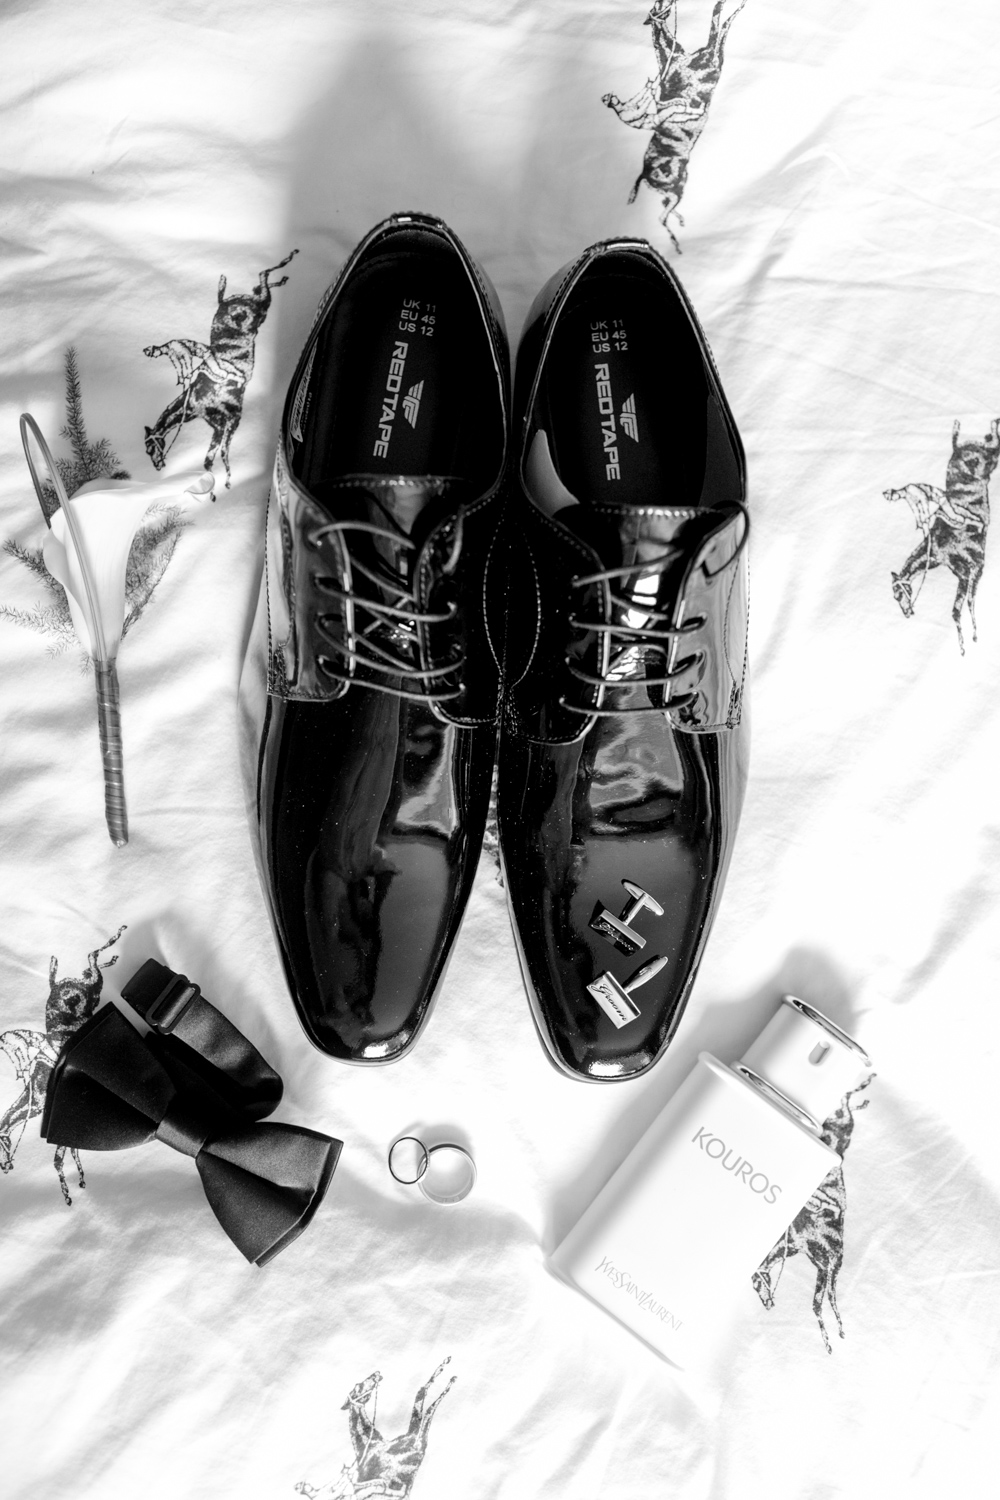 black patent shoes and bow tie for black tie wedding